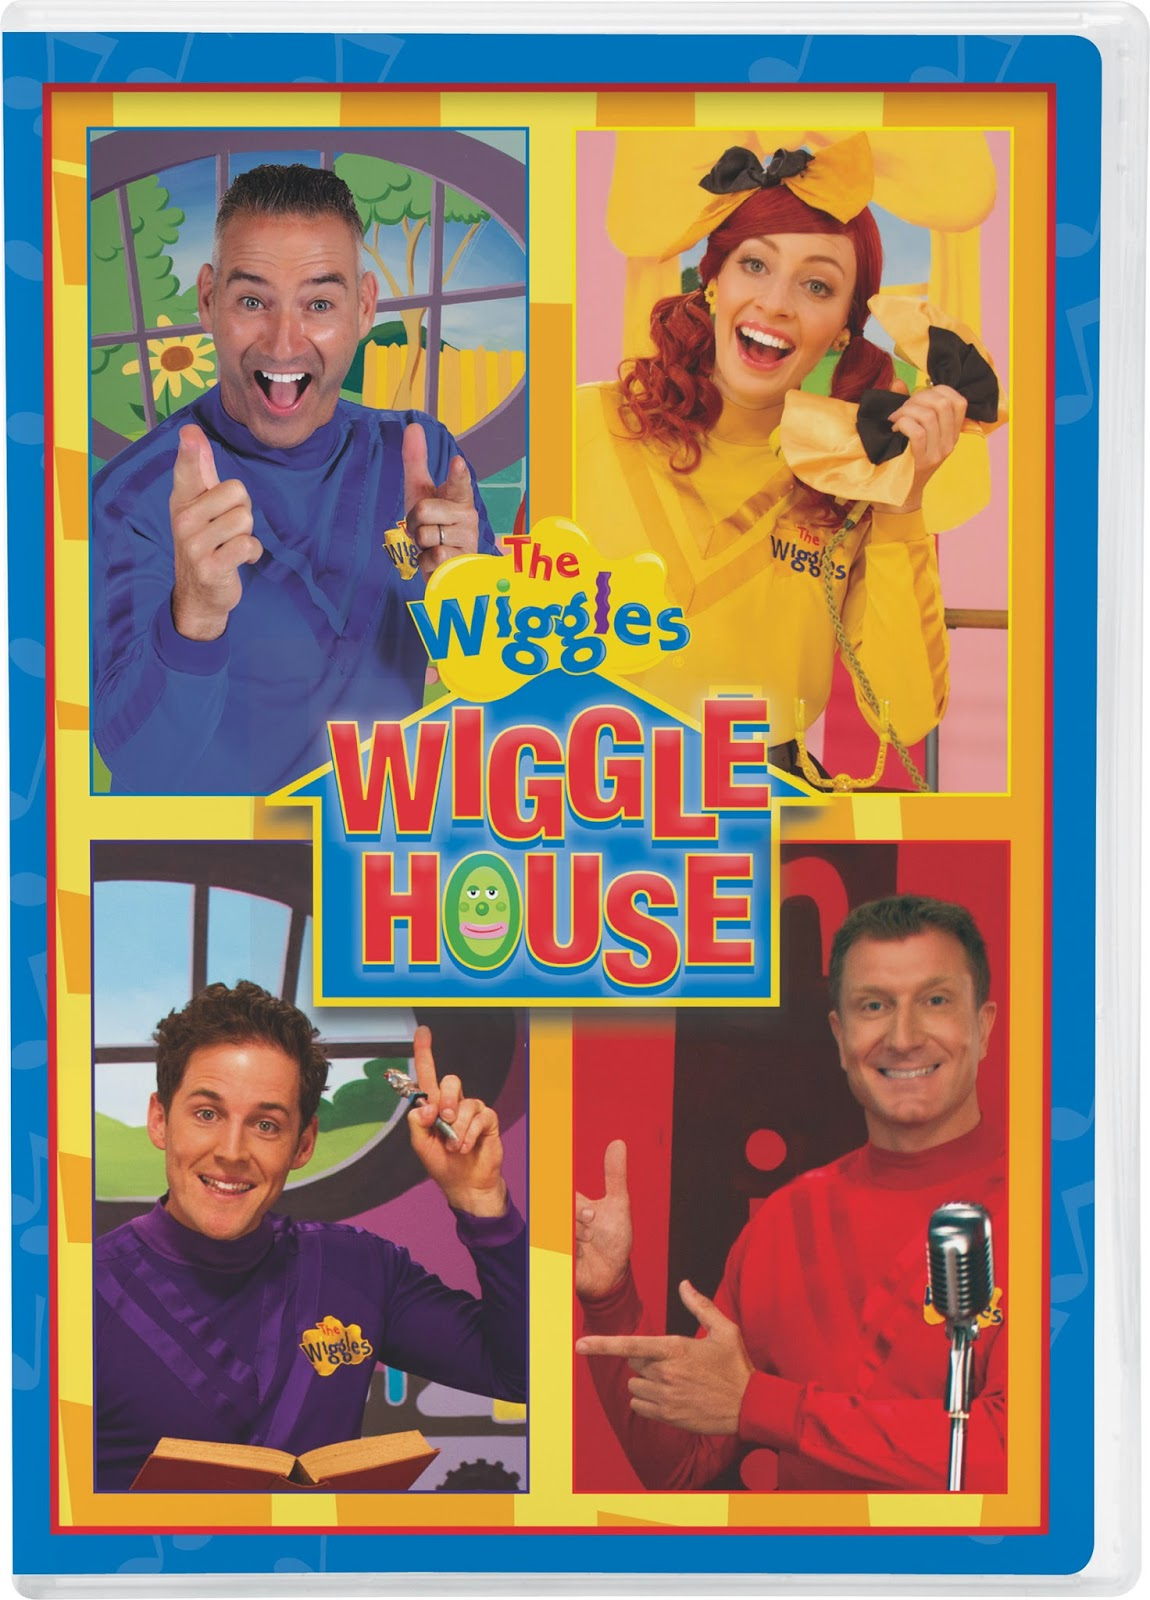 http://www.ncircleentertainment.com/wiggles-wiggle-house/843501008430